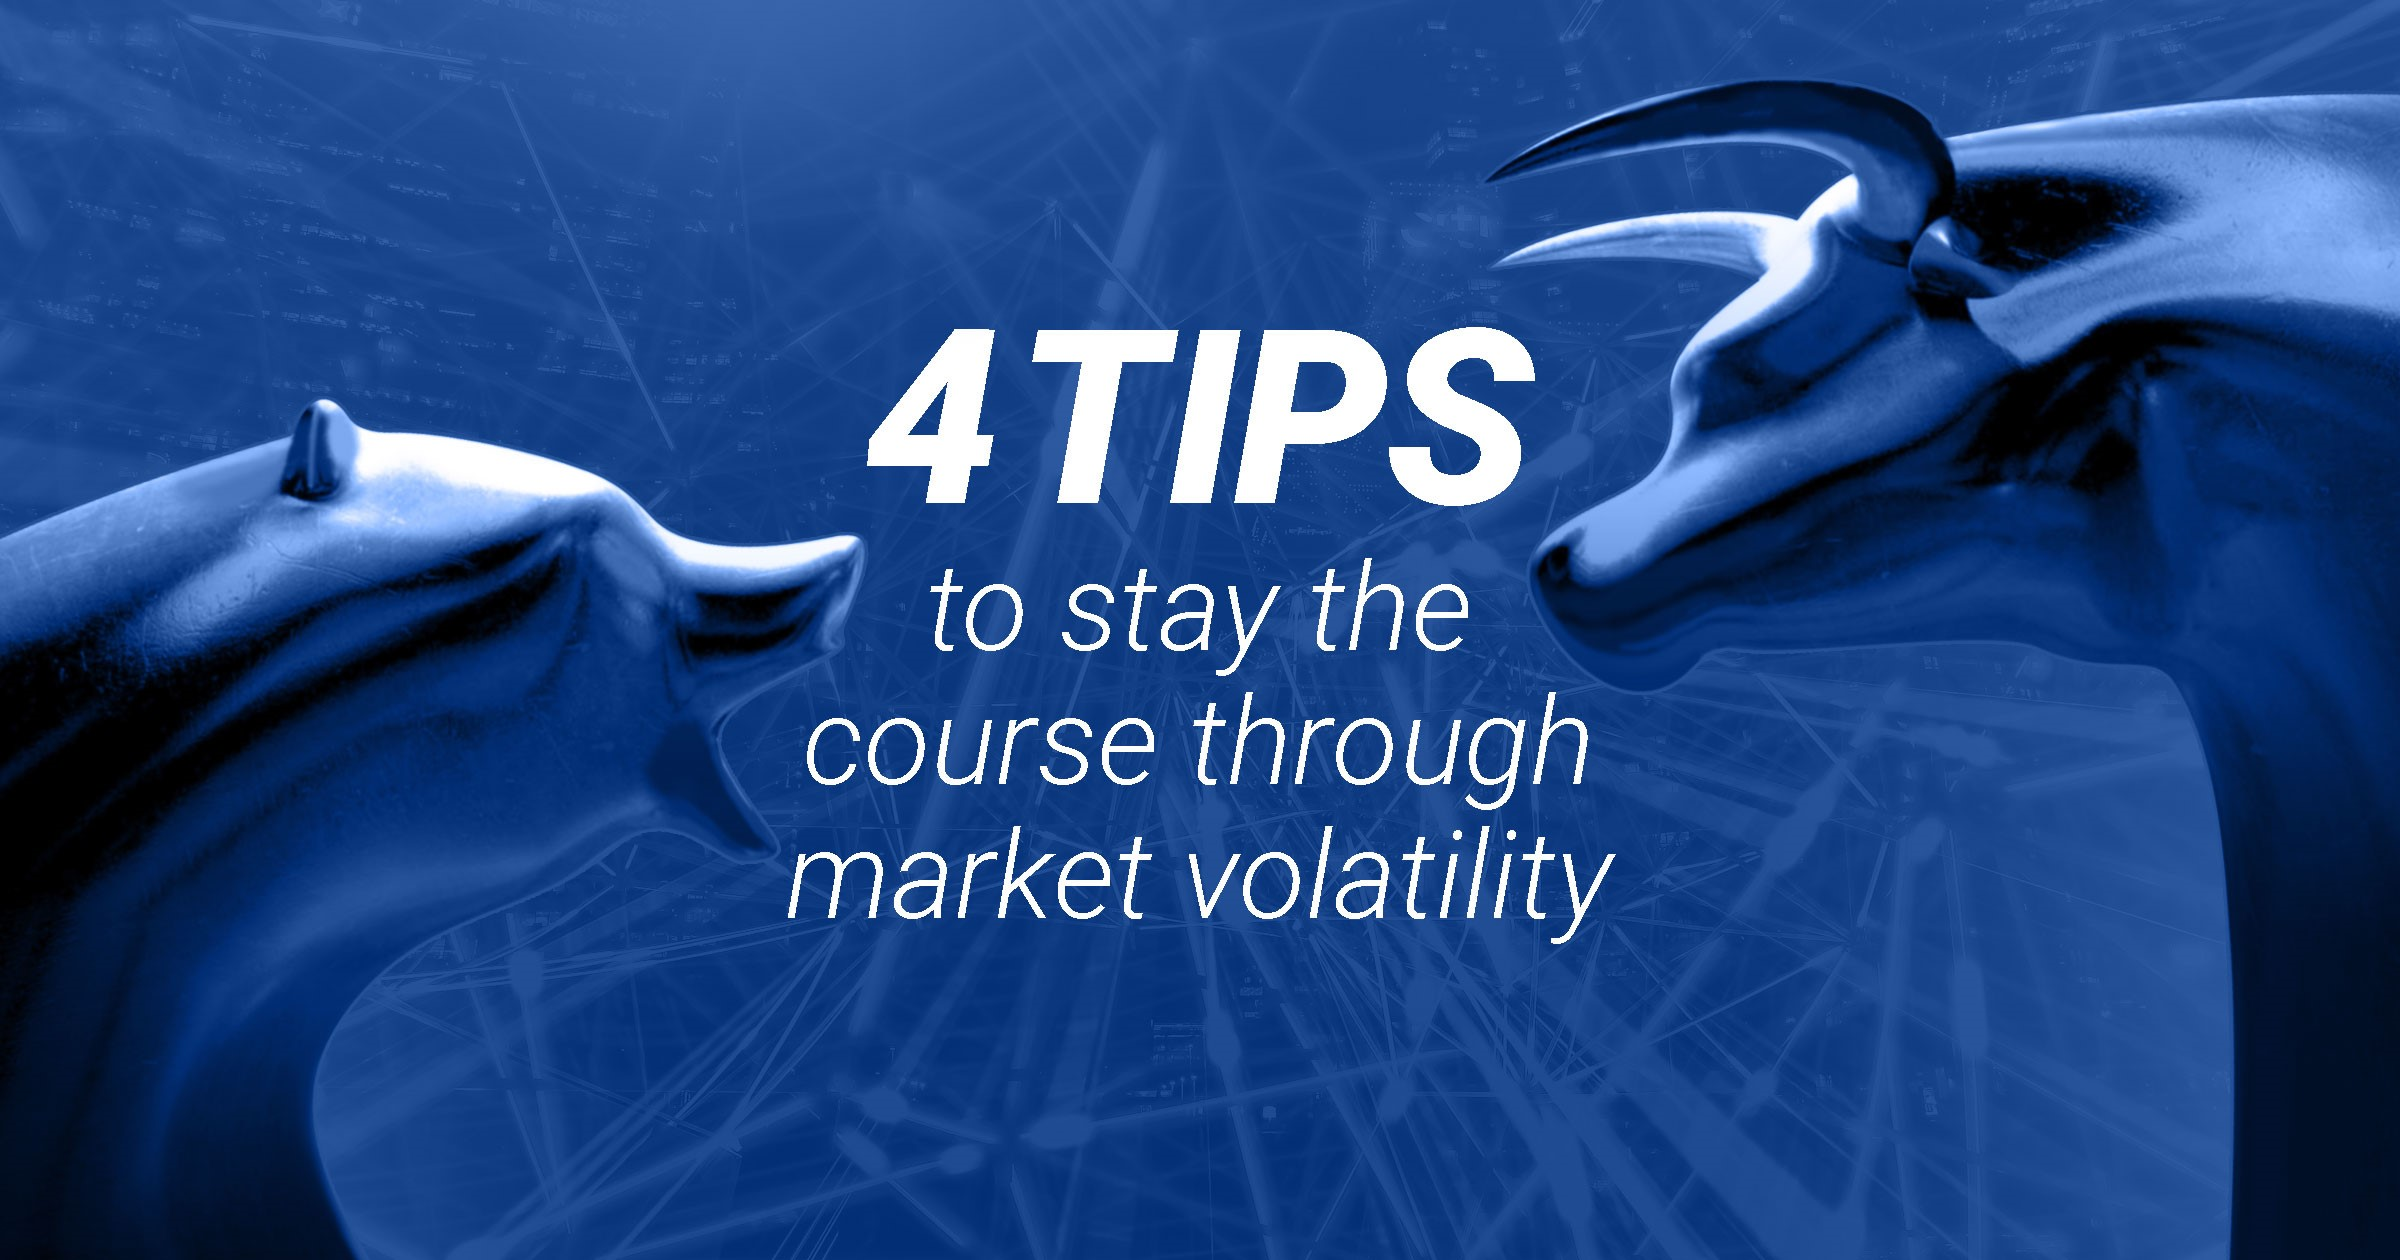 4TipstoStaytheCoursethroughMarketVolatility